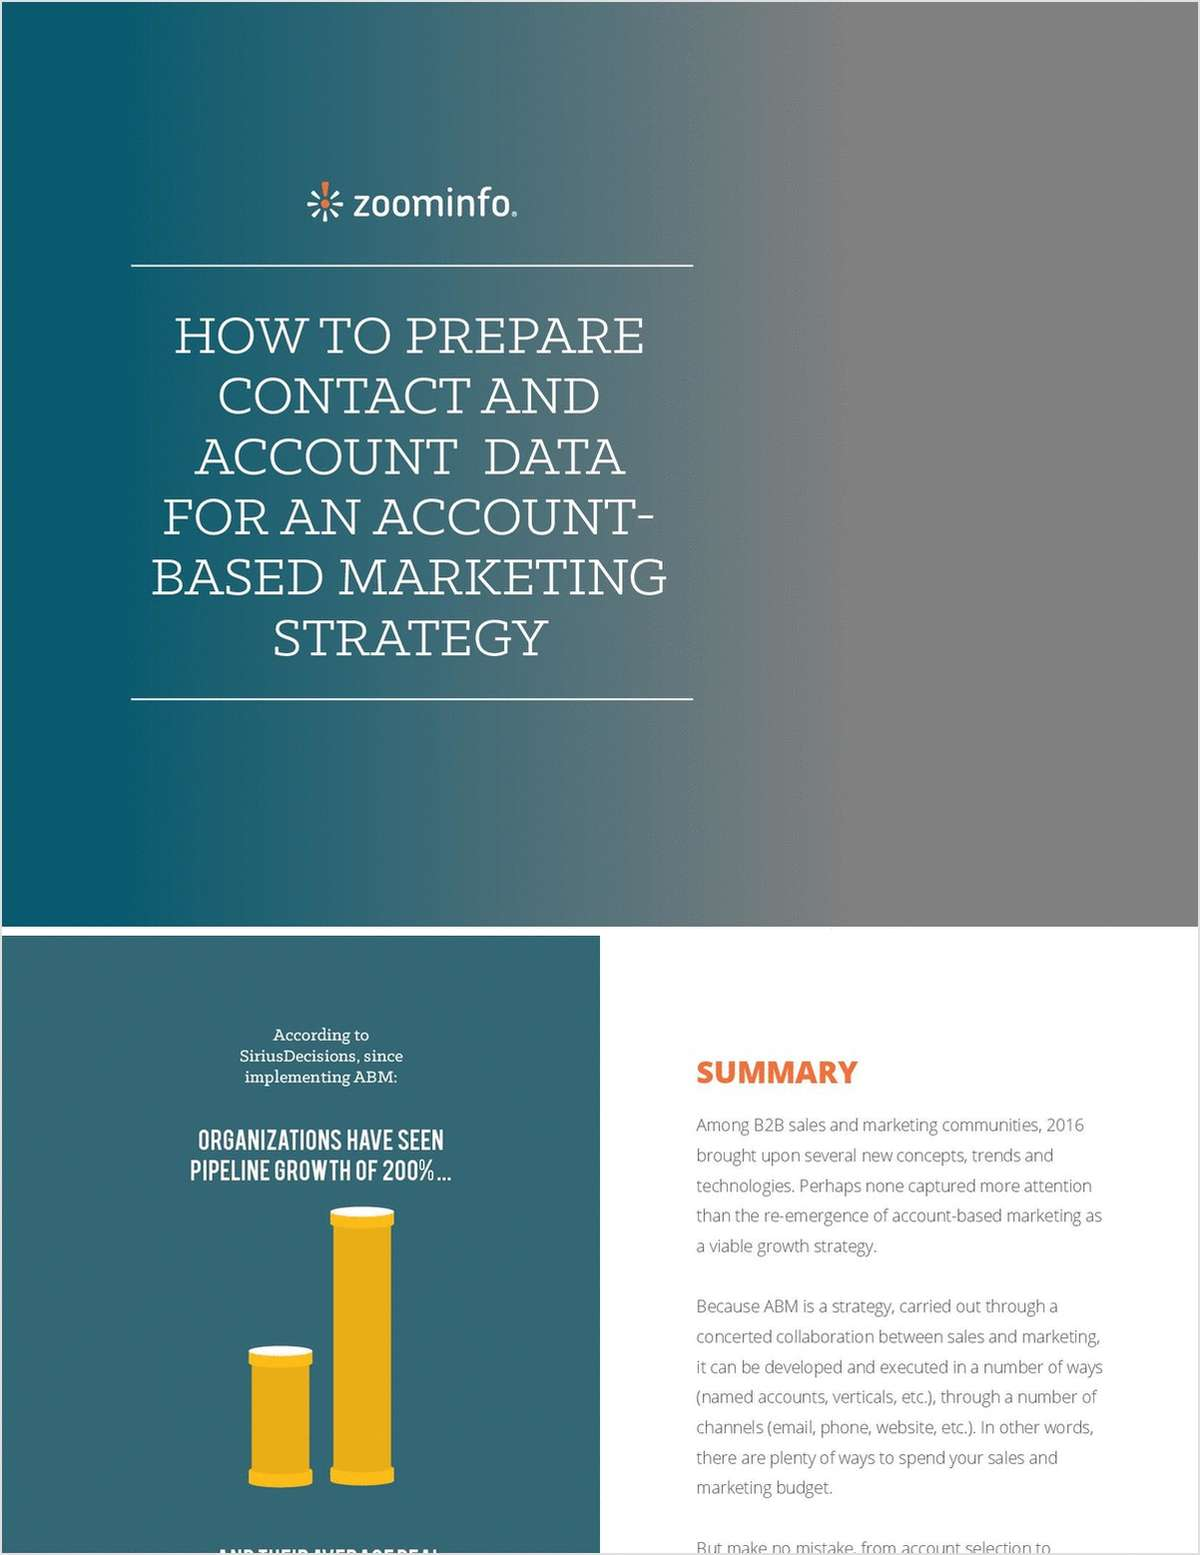 How to Prepare Contact and Account Data for an Account-Based Marketing Strategy